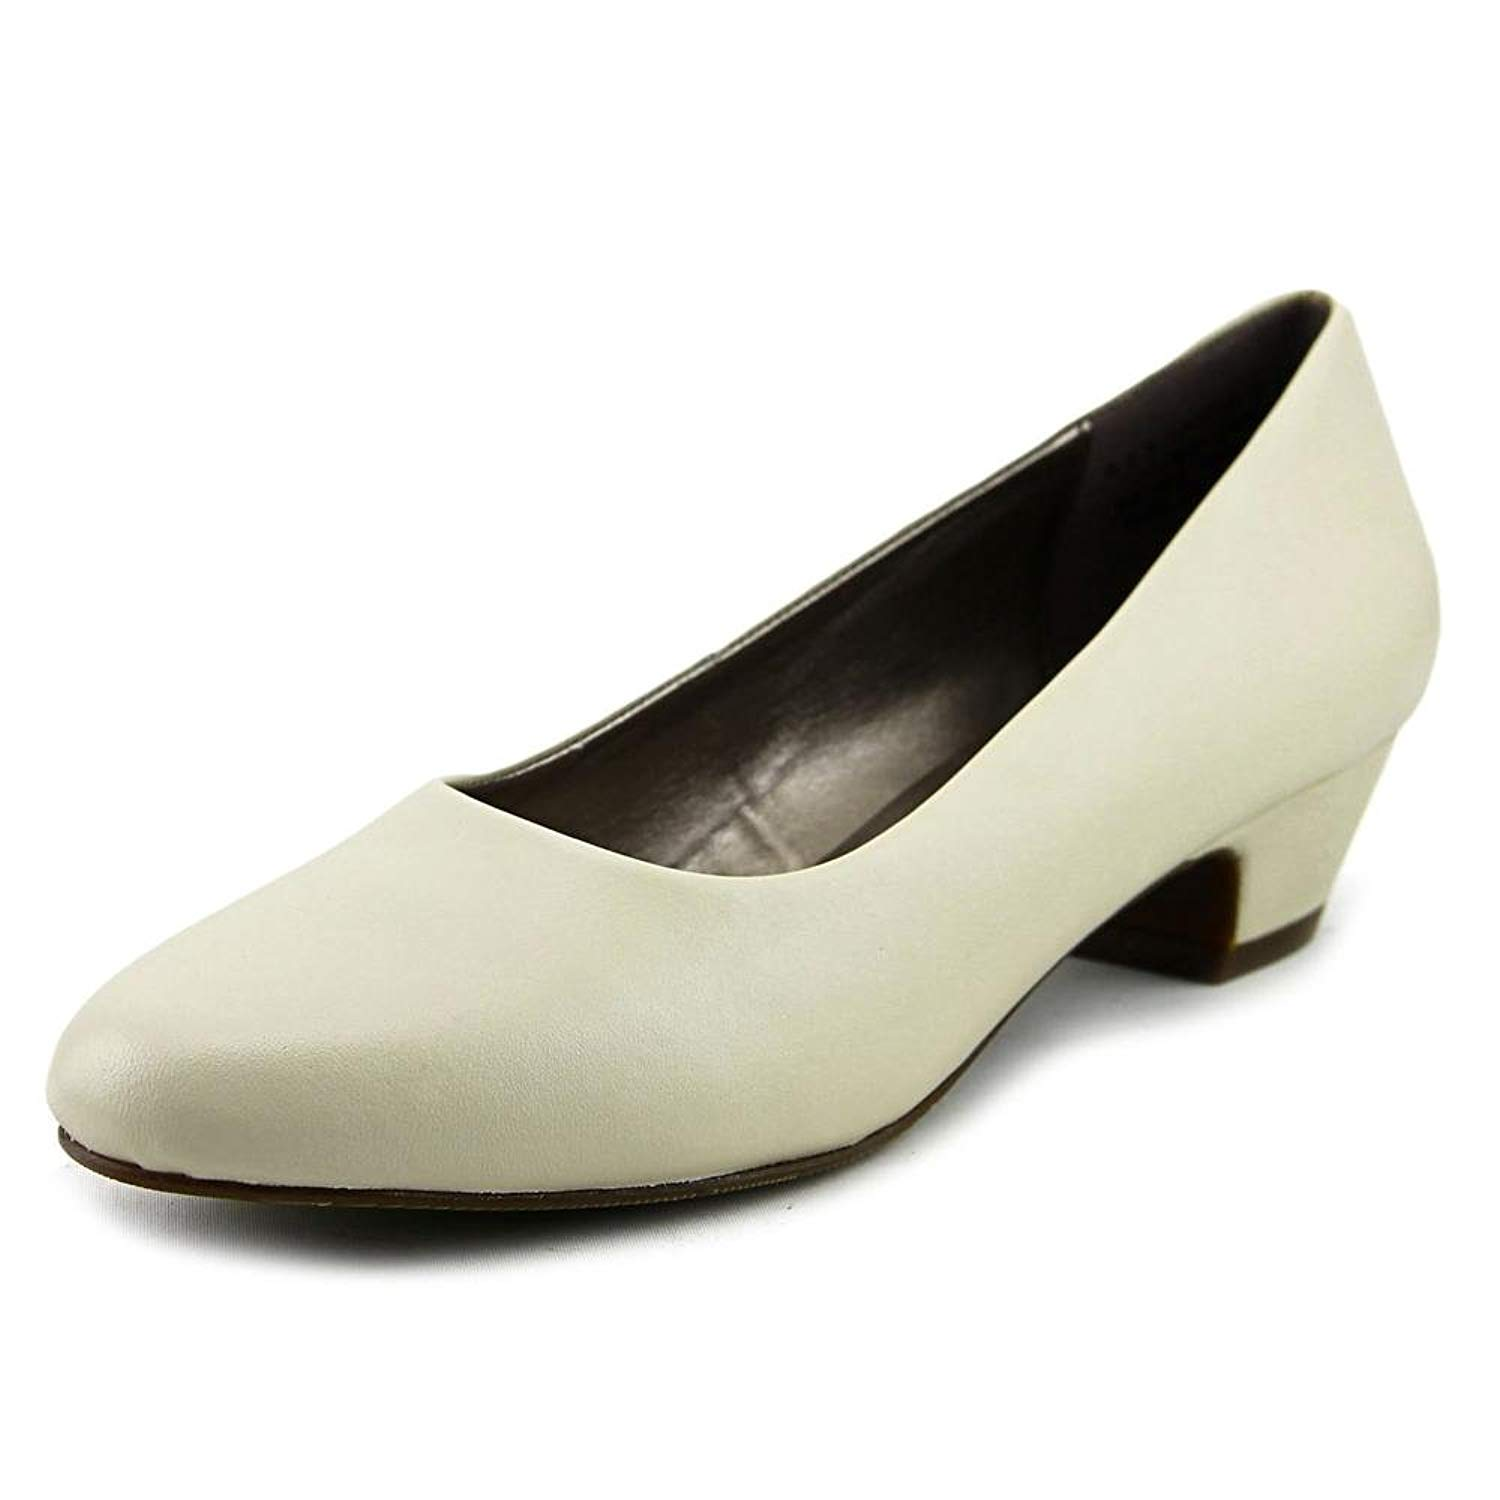 6e7dc1969cf10 ARRAY Womens Lily Leather Closed Toe Classic Pumps | eBay